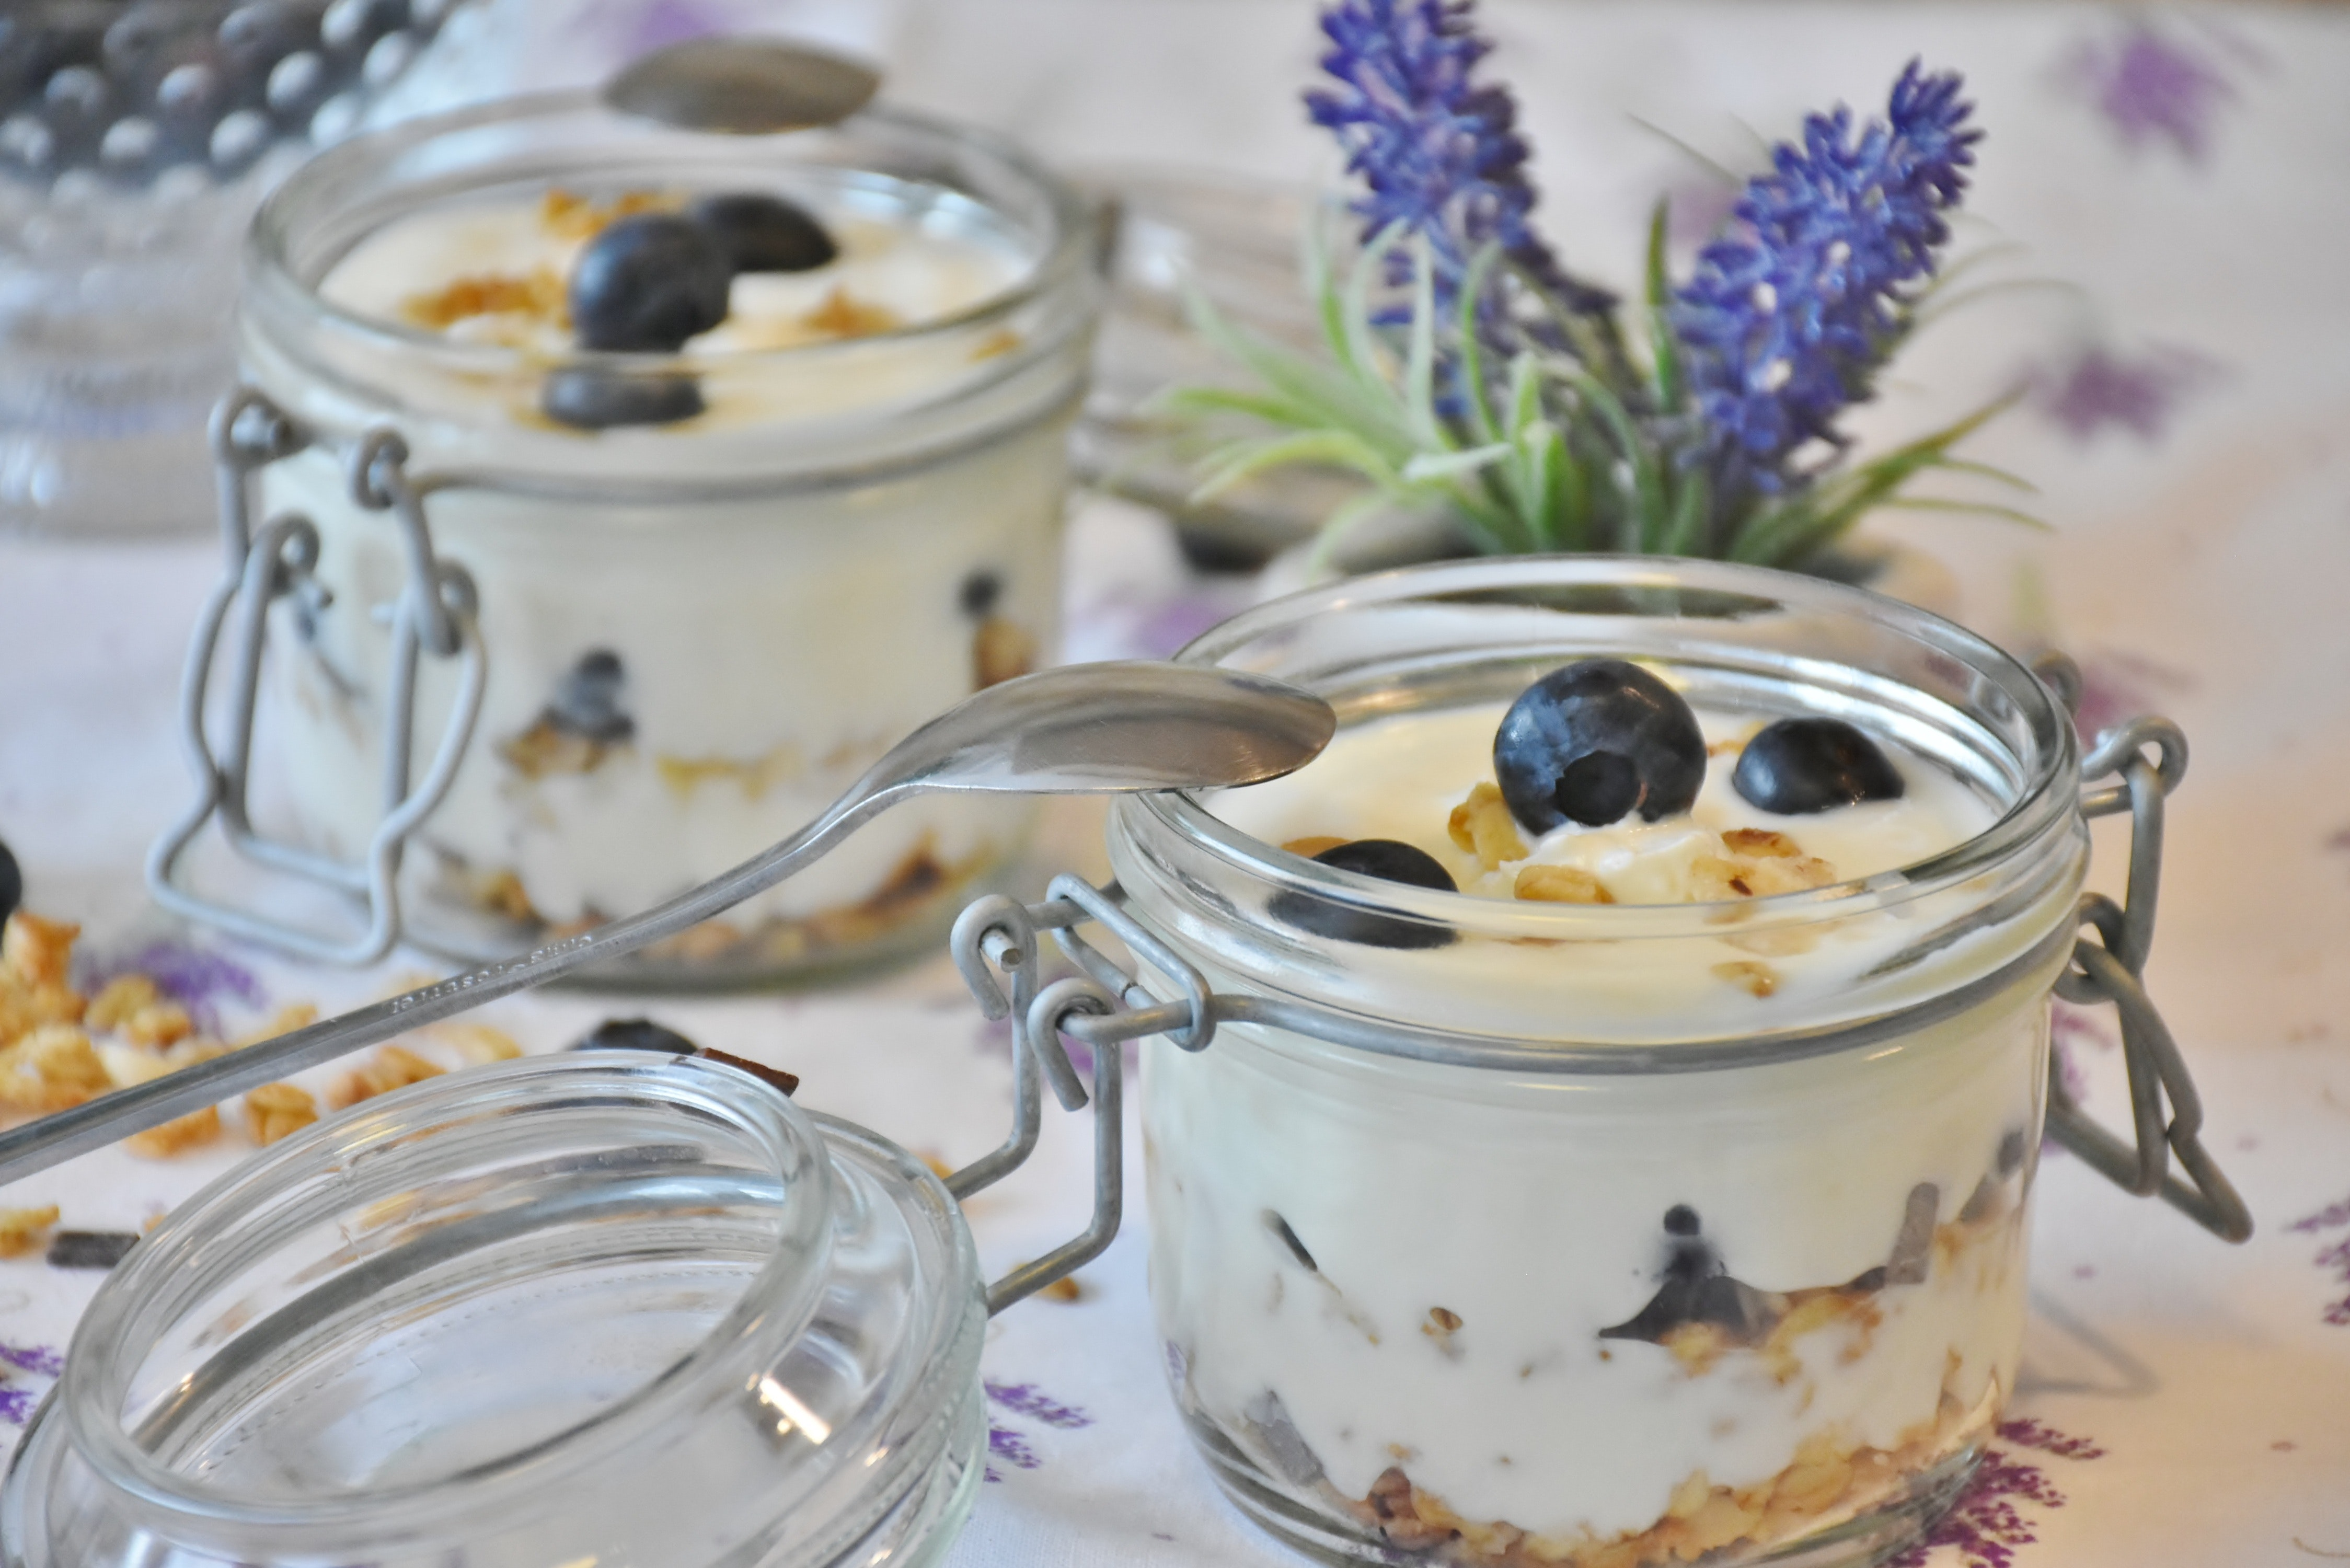 blueberries-overnight oats-breakfast-209460